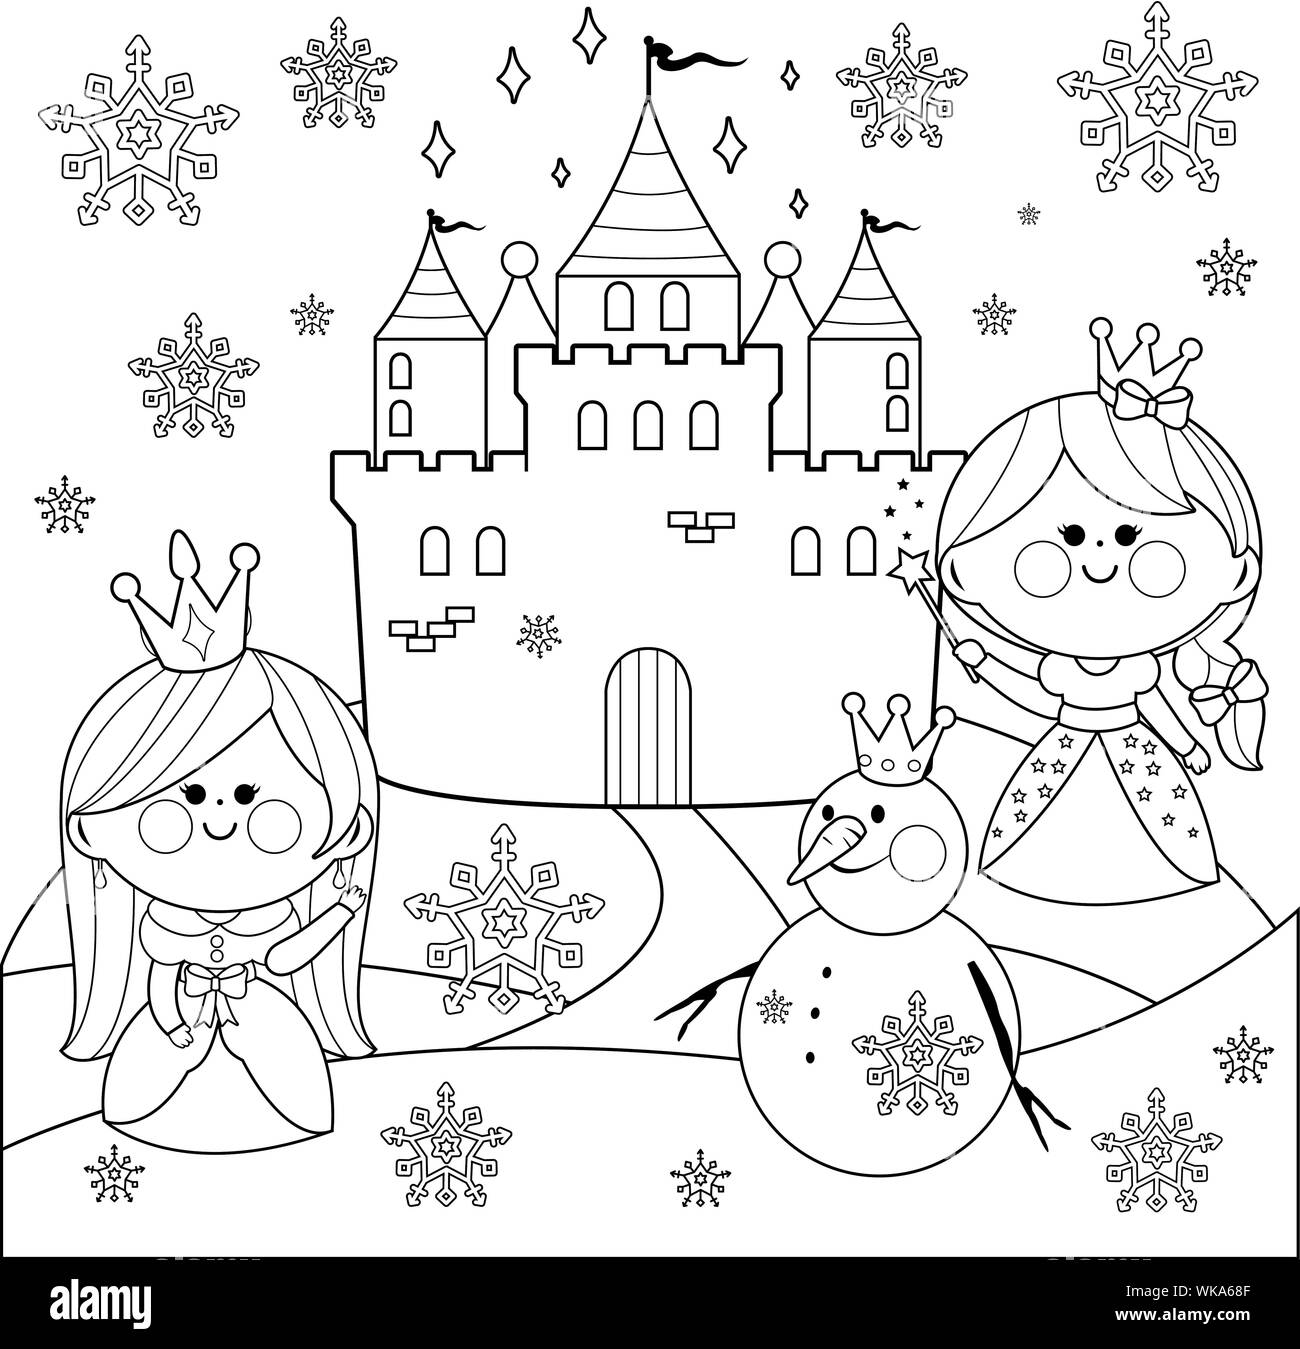 Beautiful Princess Coloring Pages For kids – Coloring Junction | 1349x1300